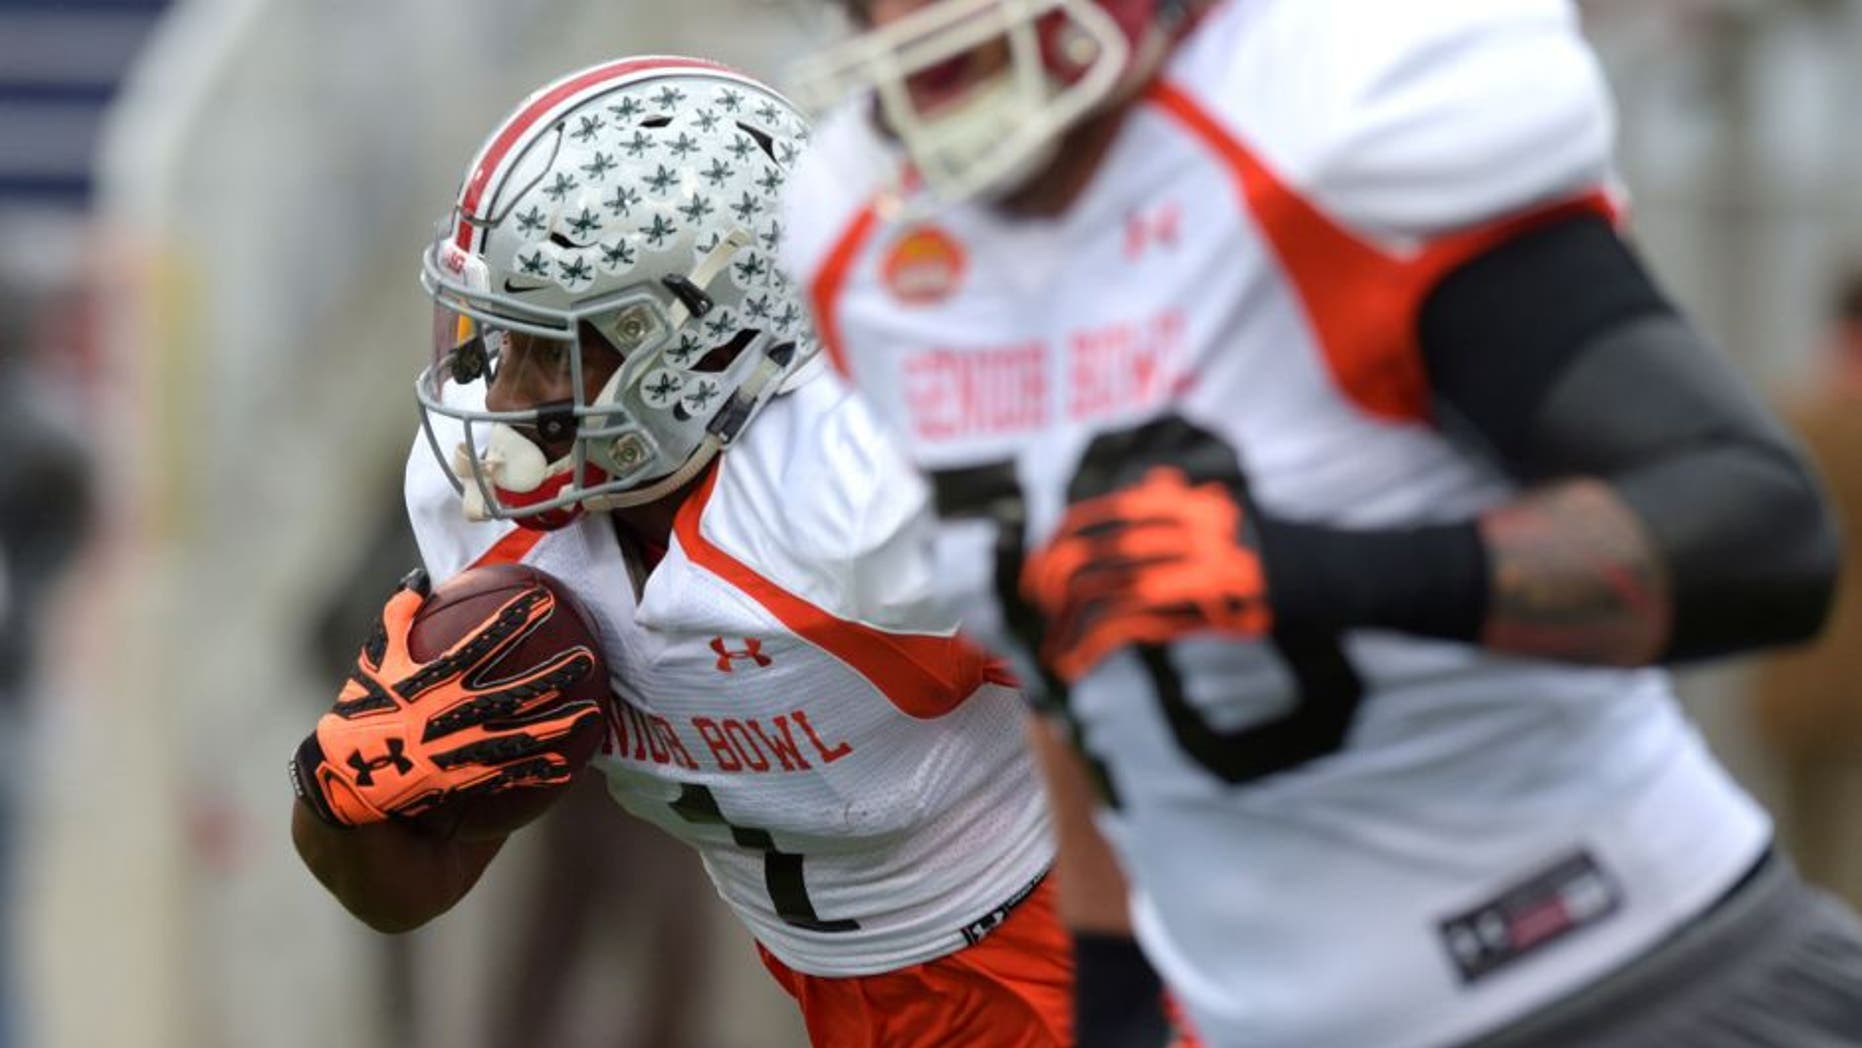 Jan 26, 2016; Mobile, AL, USA; North squad wide receiver Braxton Miller of Ohio State (1) runs the ball after a catch during Senior Bowl practice at Ladd-Peebles Stadium. Mandatory Credit: Glenn Andrews-USA TODAY Sports